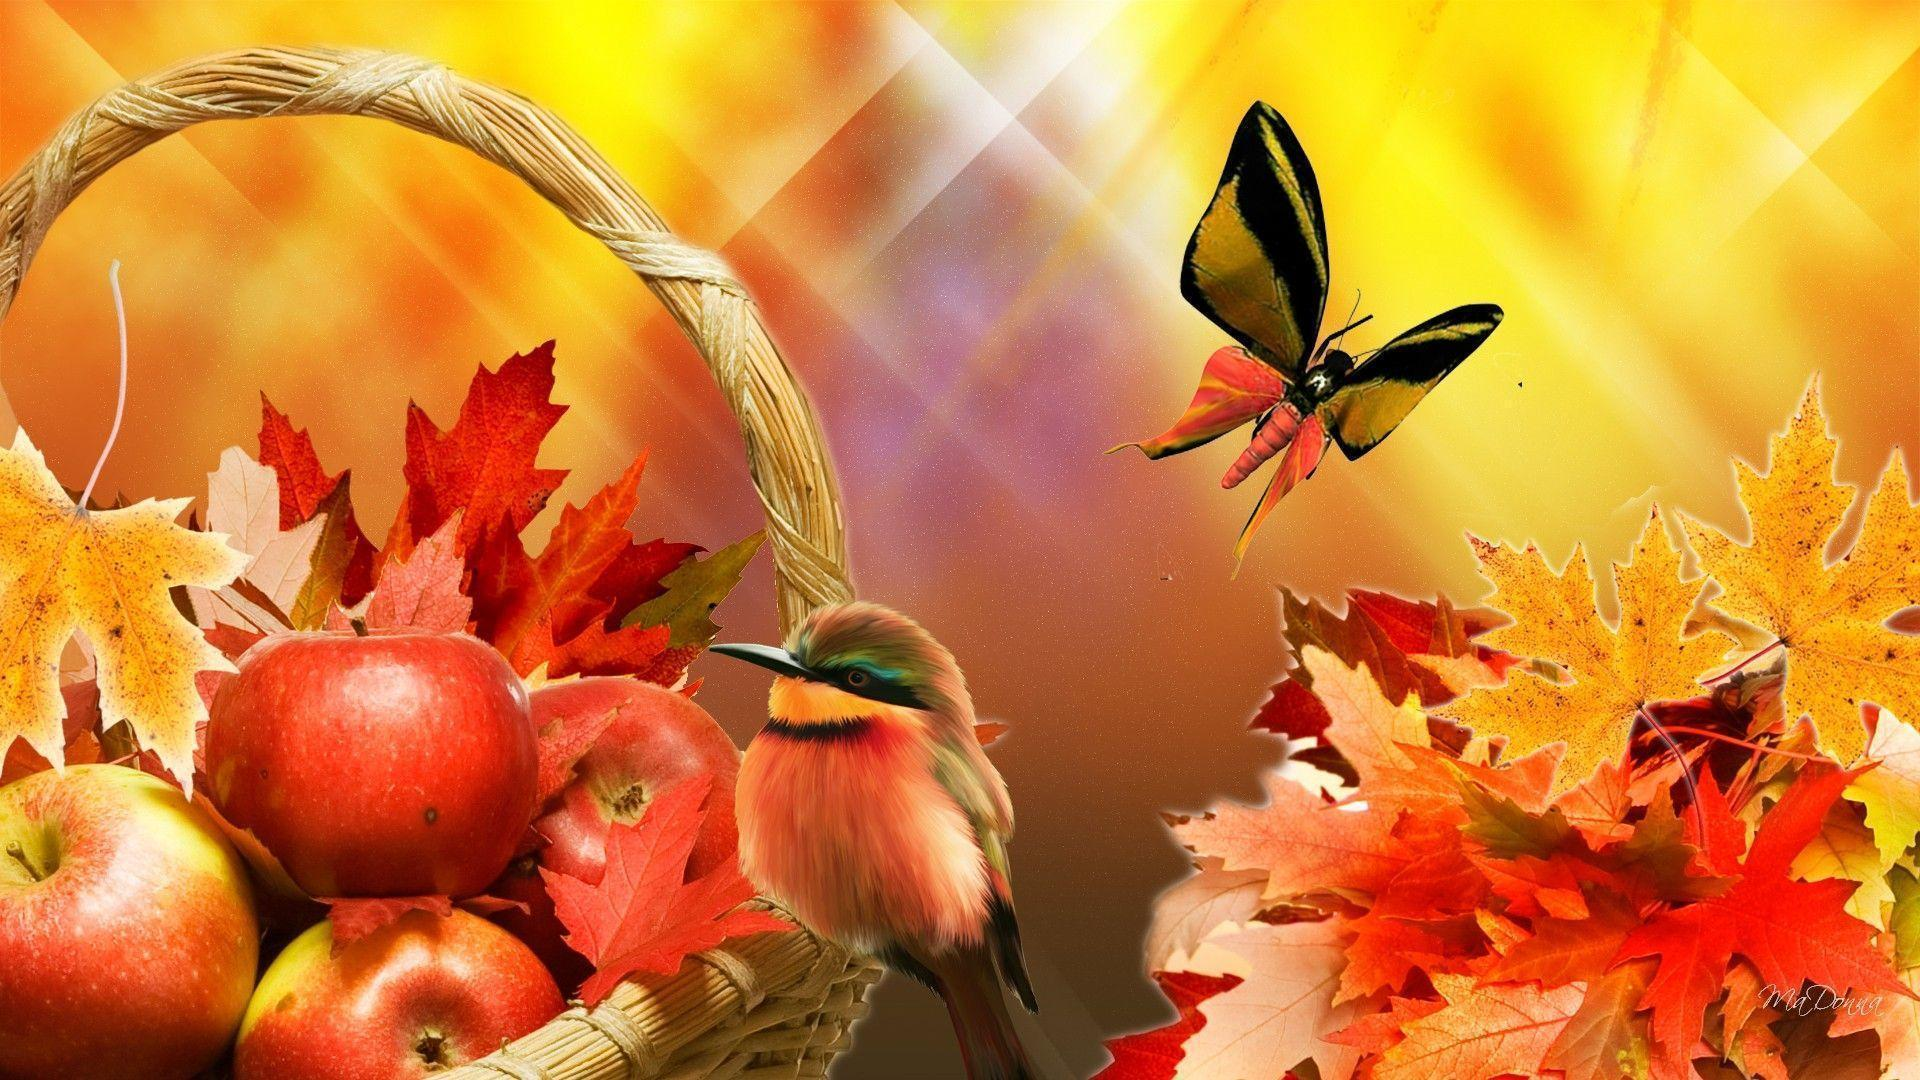 Image For > Apple Harvest Wallpapers